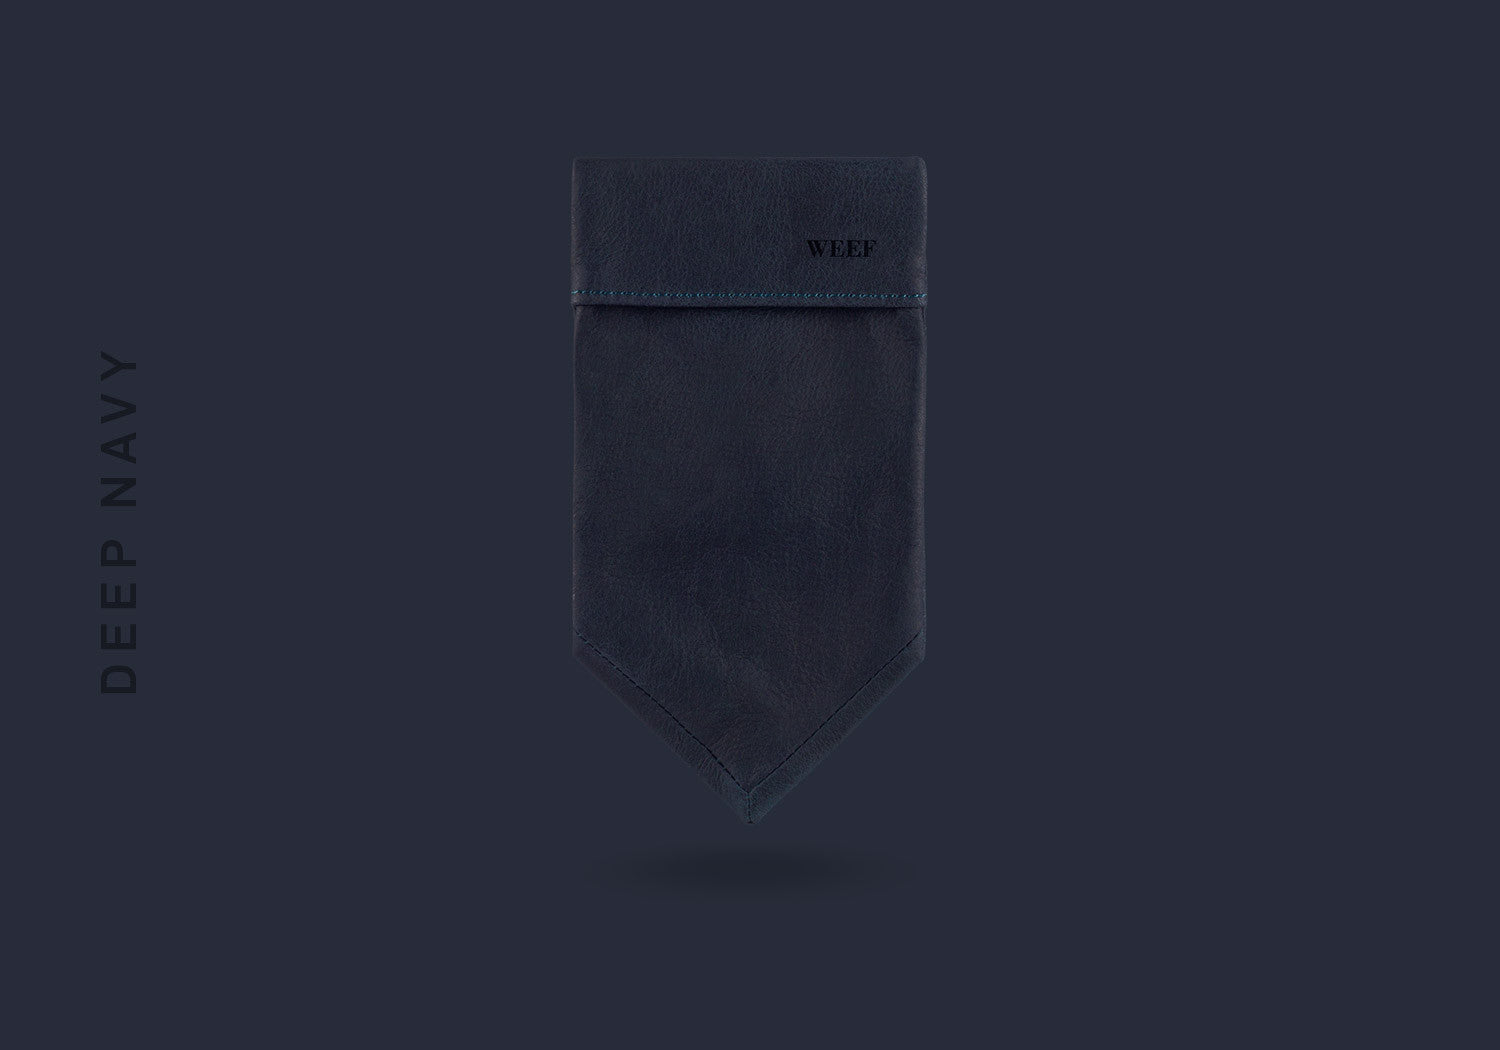 This deep navy WEEF handmade leather pocket square is a great present or gift idea for dapper and stylish gentlemen for fathers day, valentines day or Christmas.